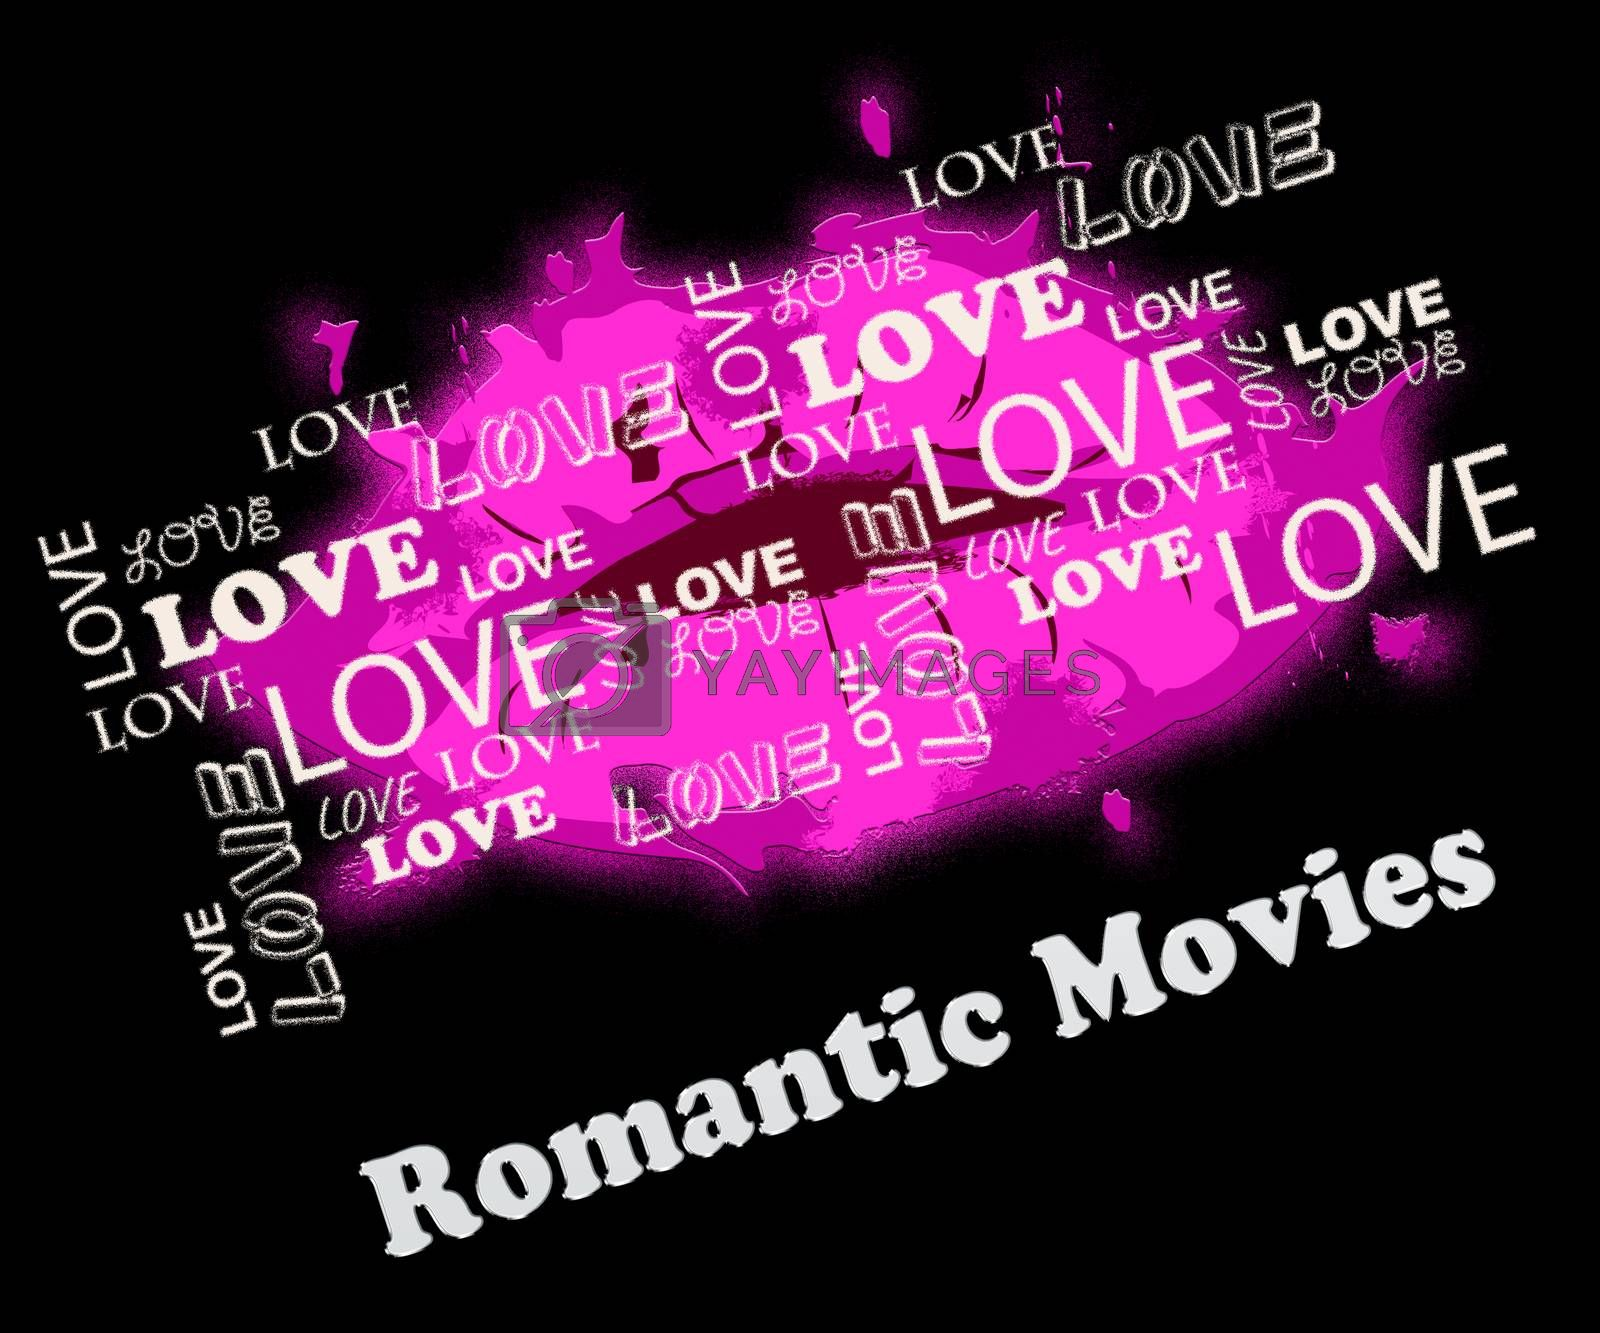 Romantic Movies Lips Showing Romance Films And Videos